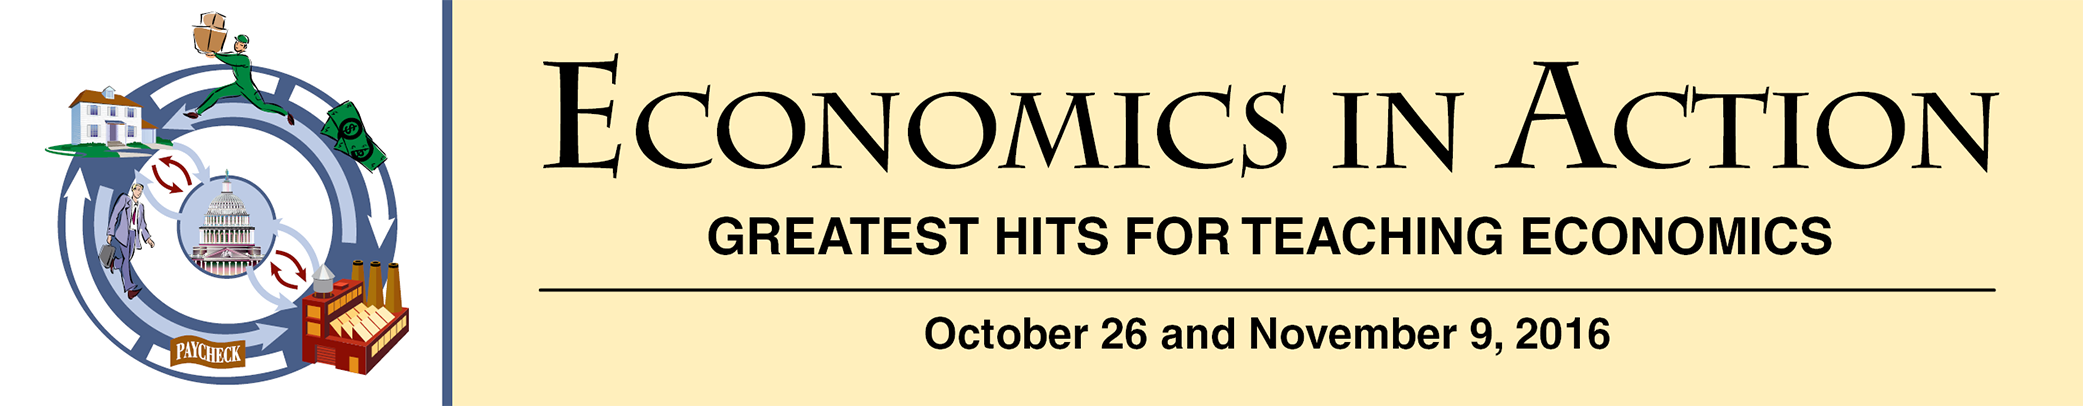 Economics in Action Greatest Hits for Teaching Economics